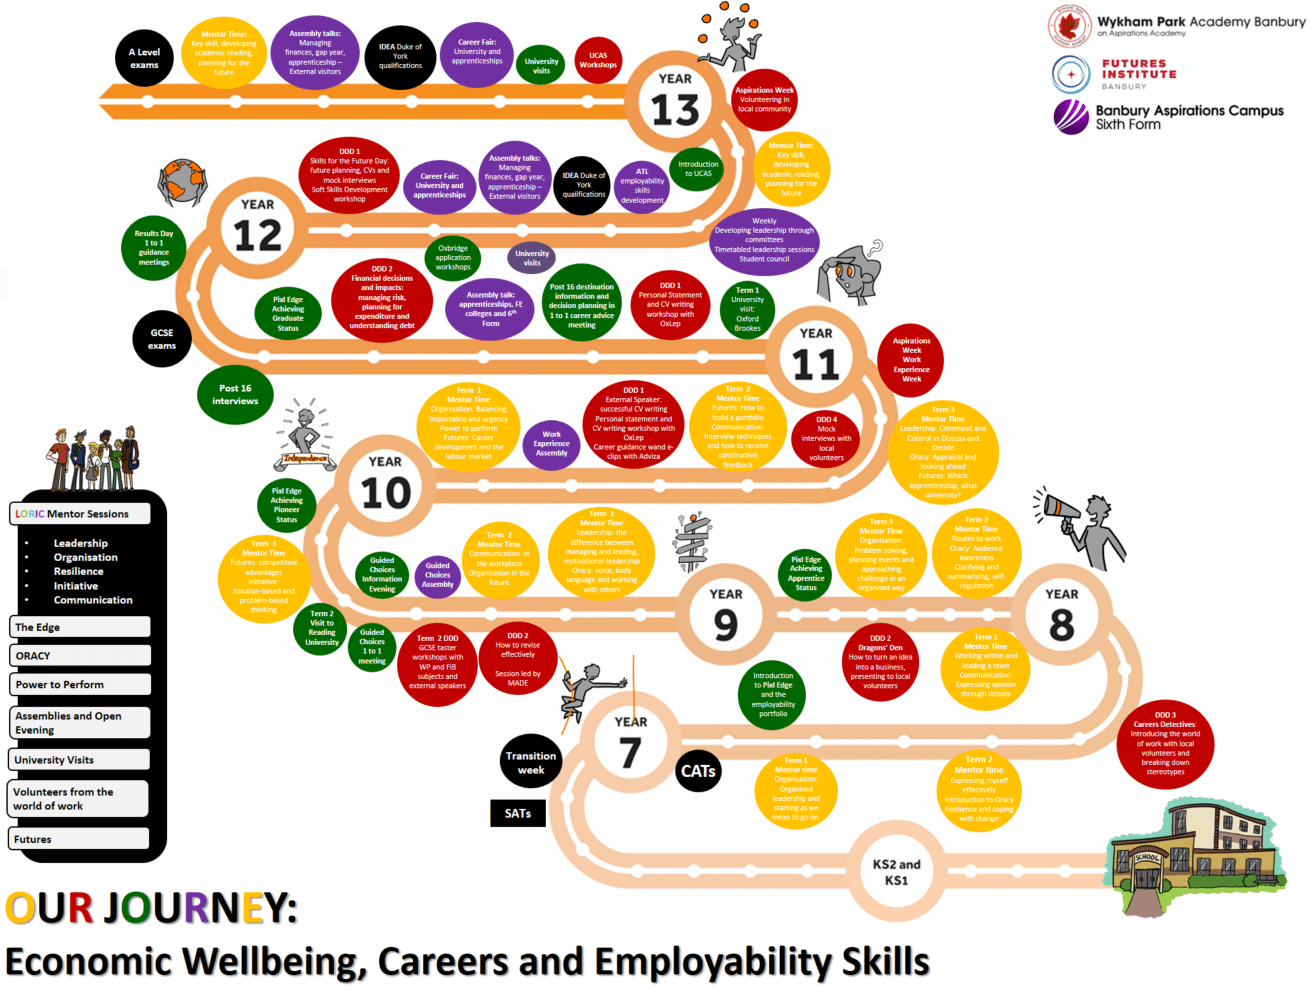 onomic Wellbeing, Careers and Employability Skills